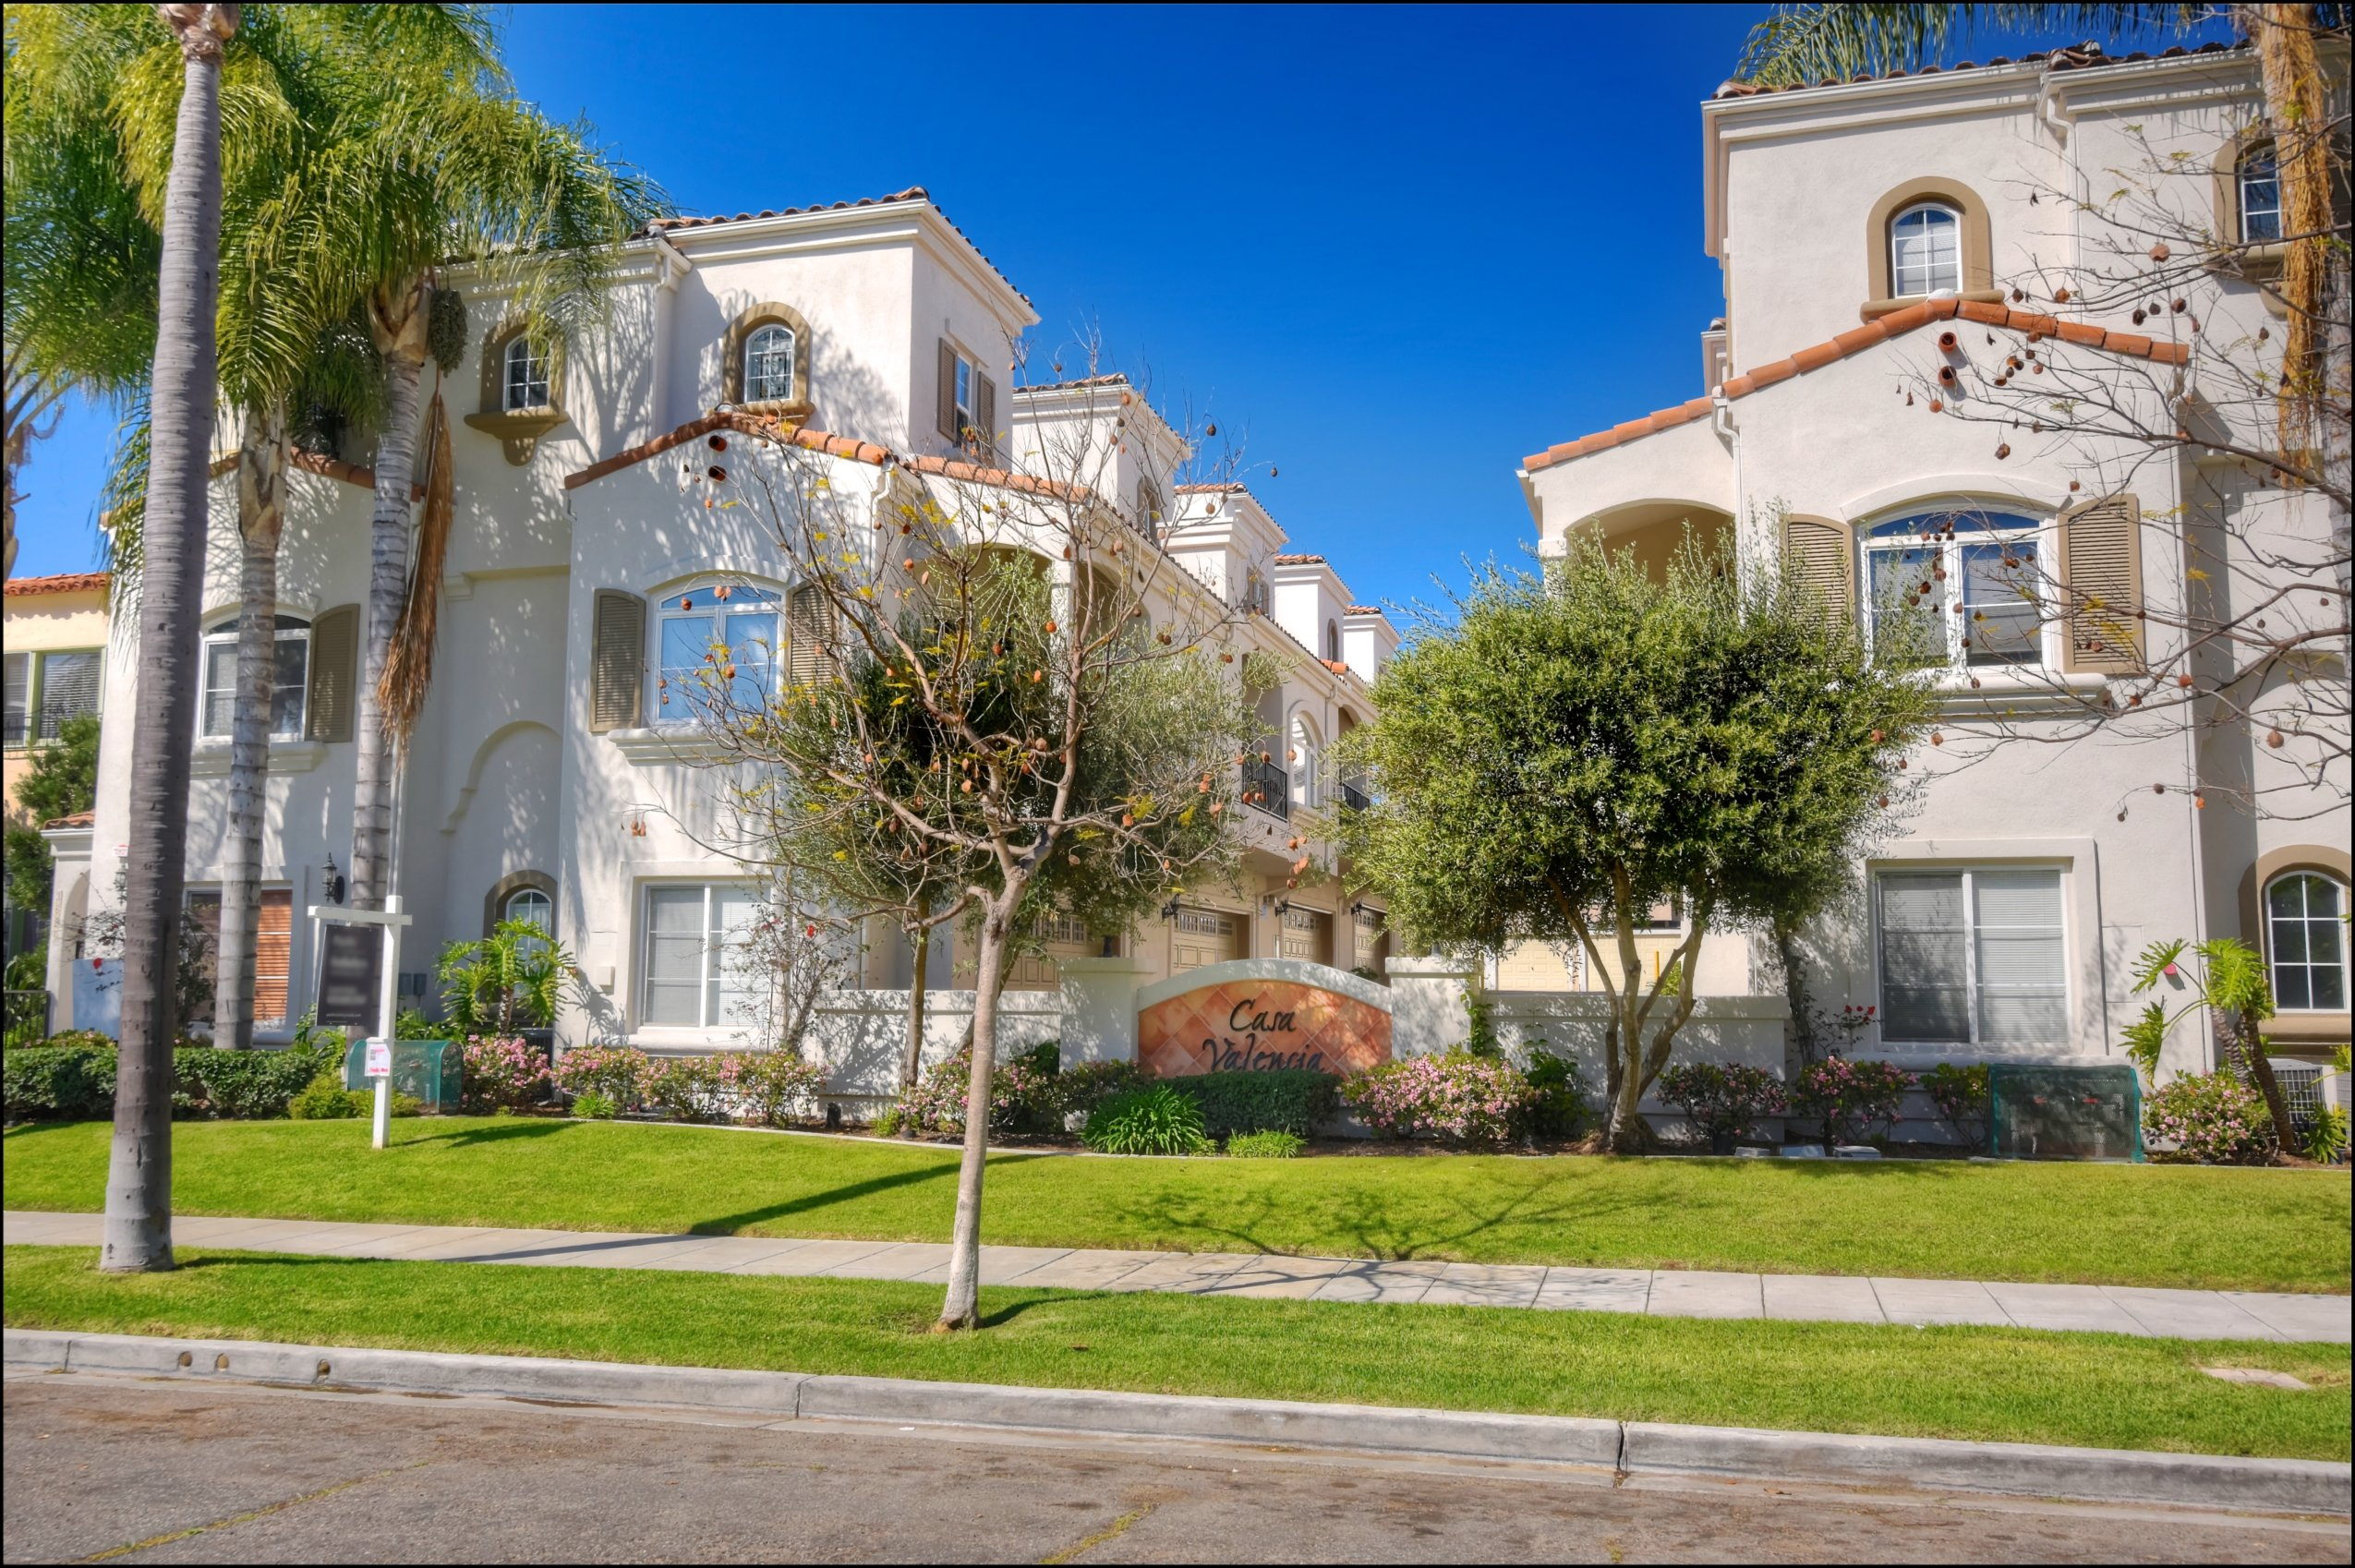 Hillcrest 3 Story Town Home for Sale